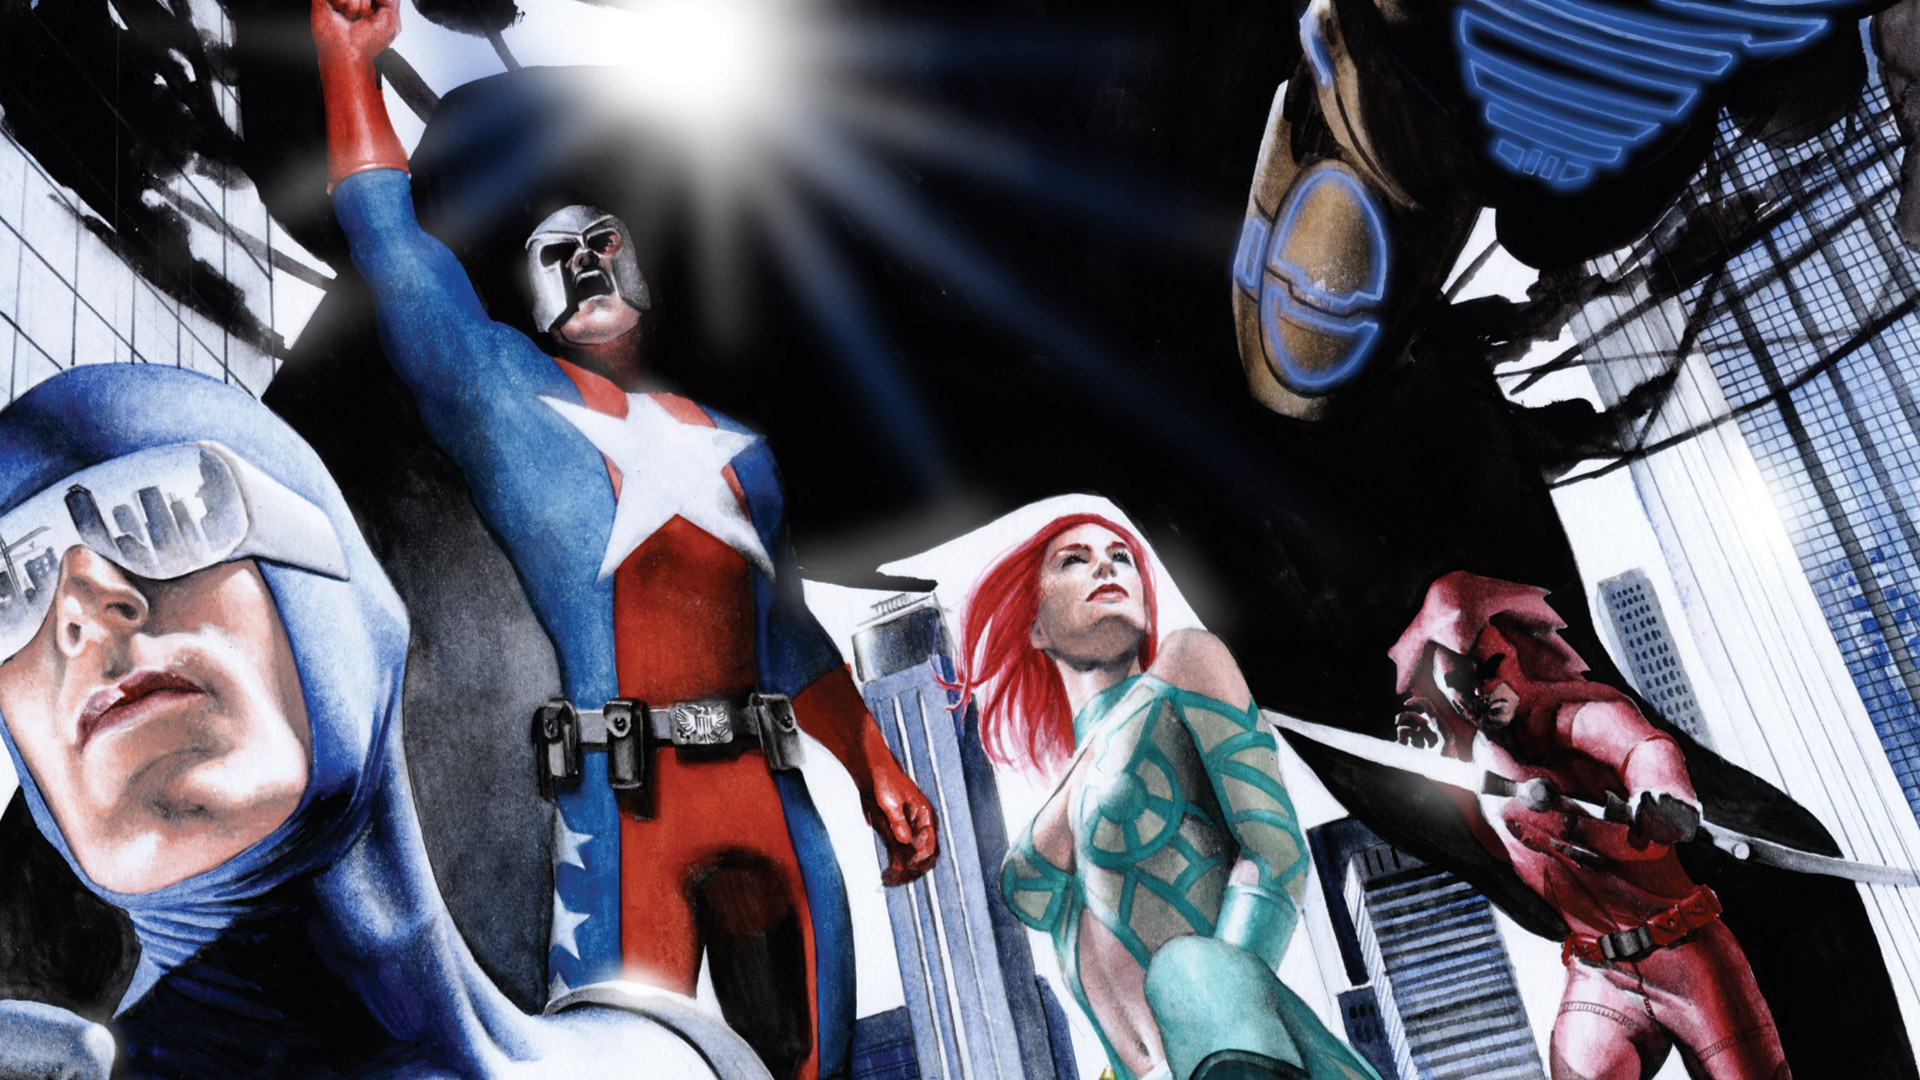 Free City of Heroes Wallpaper in 1920x1080